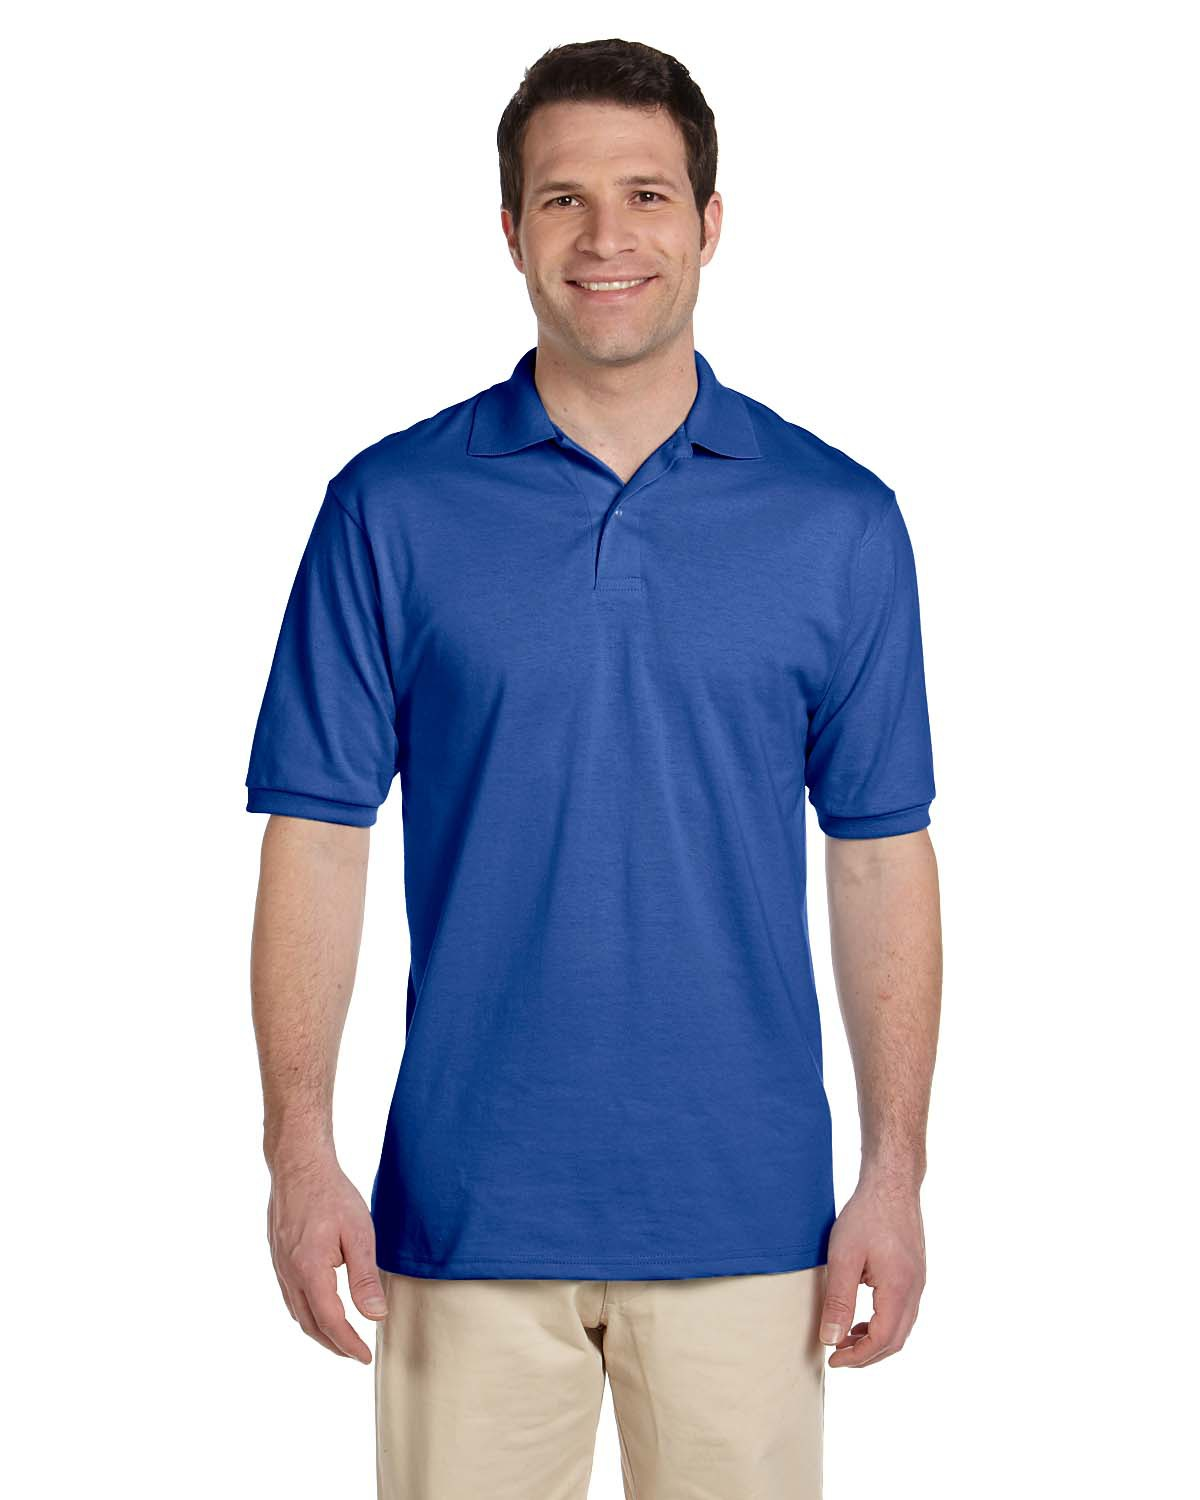 Adult 5.6 Oz. Spotshield™ Jersey Polo-Jerzees